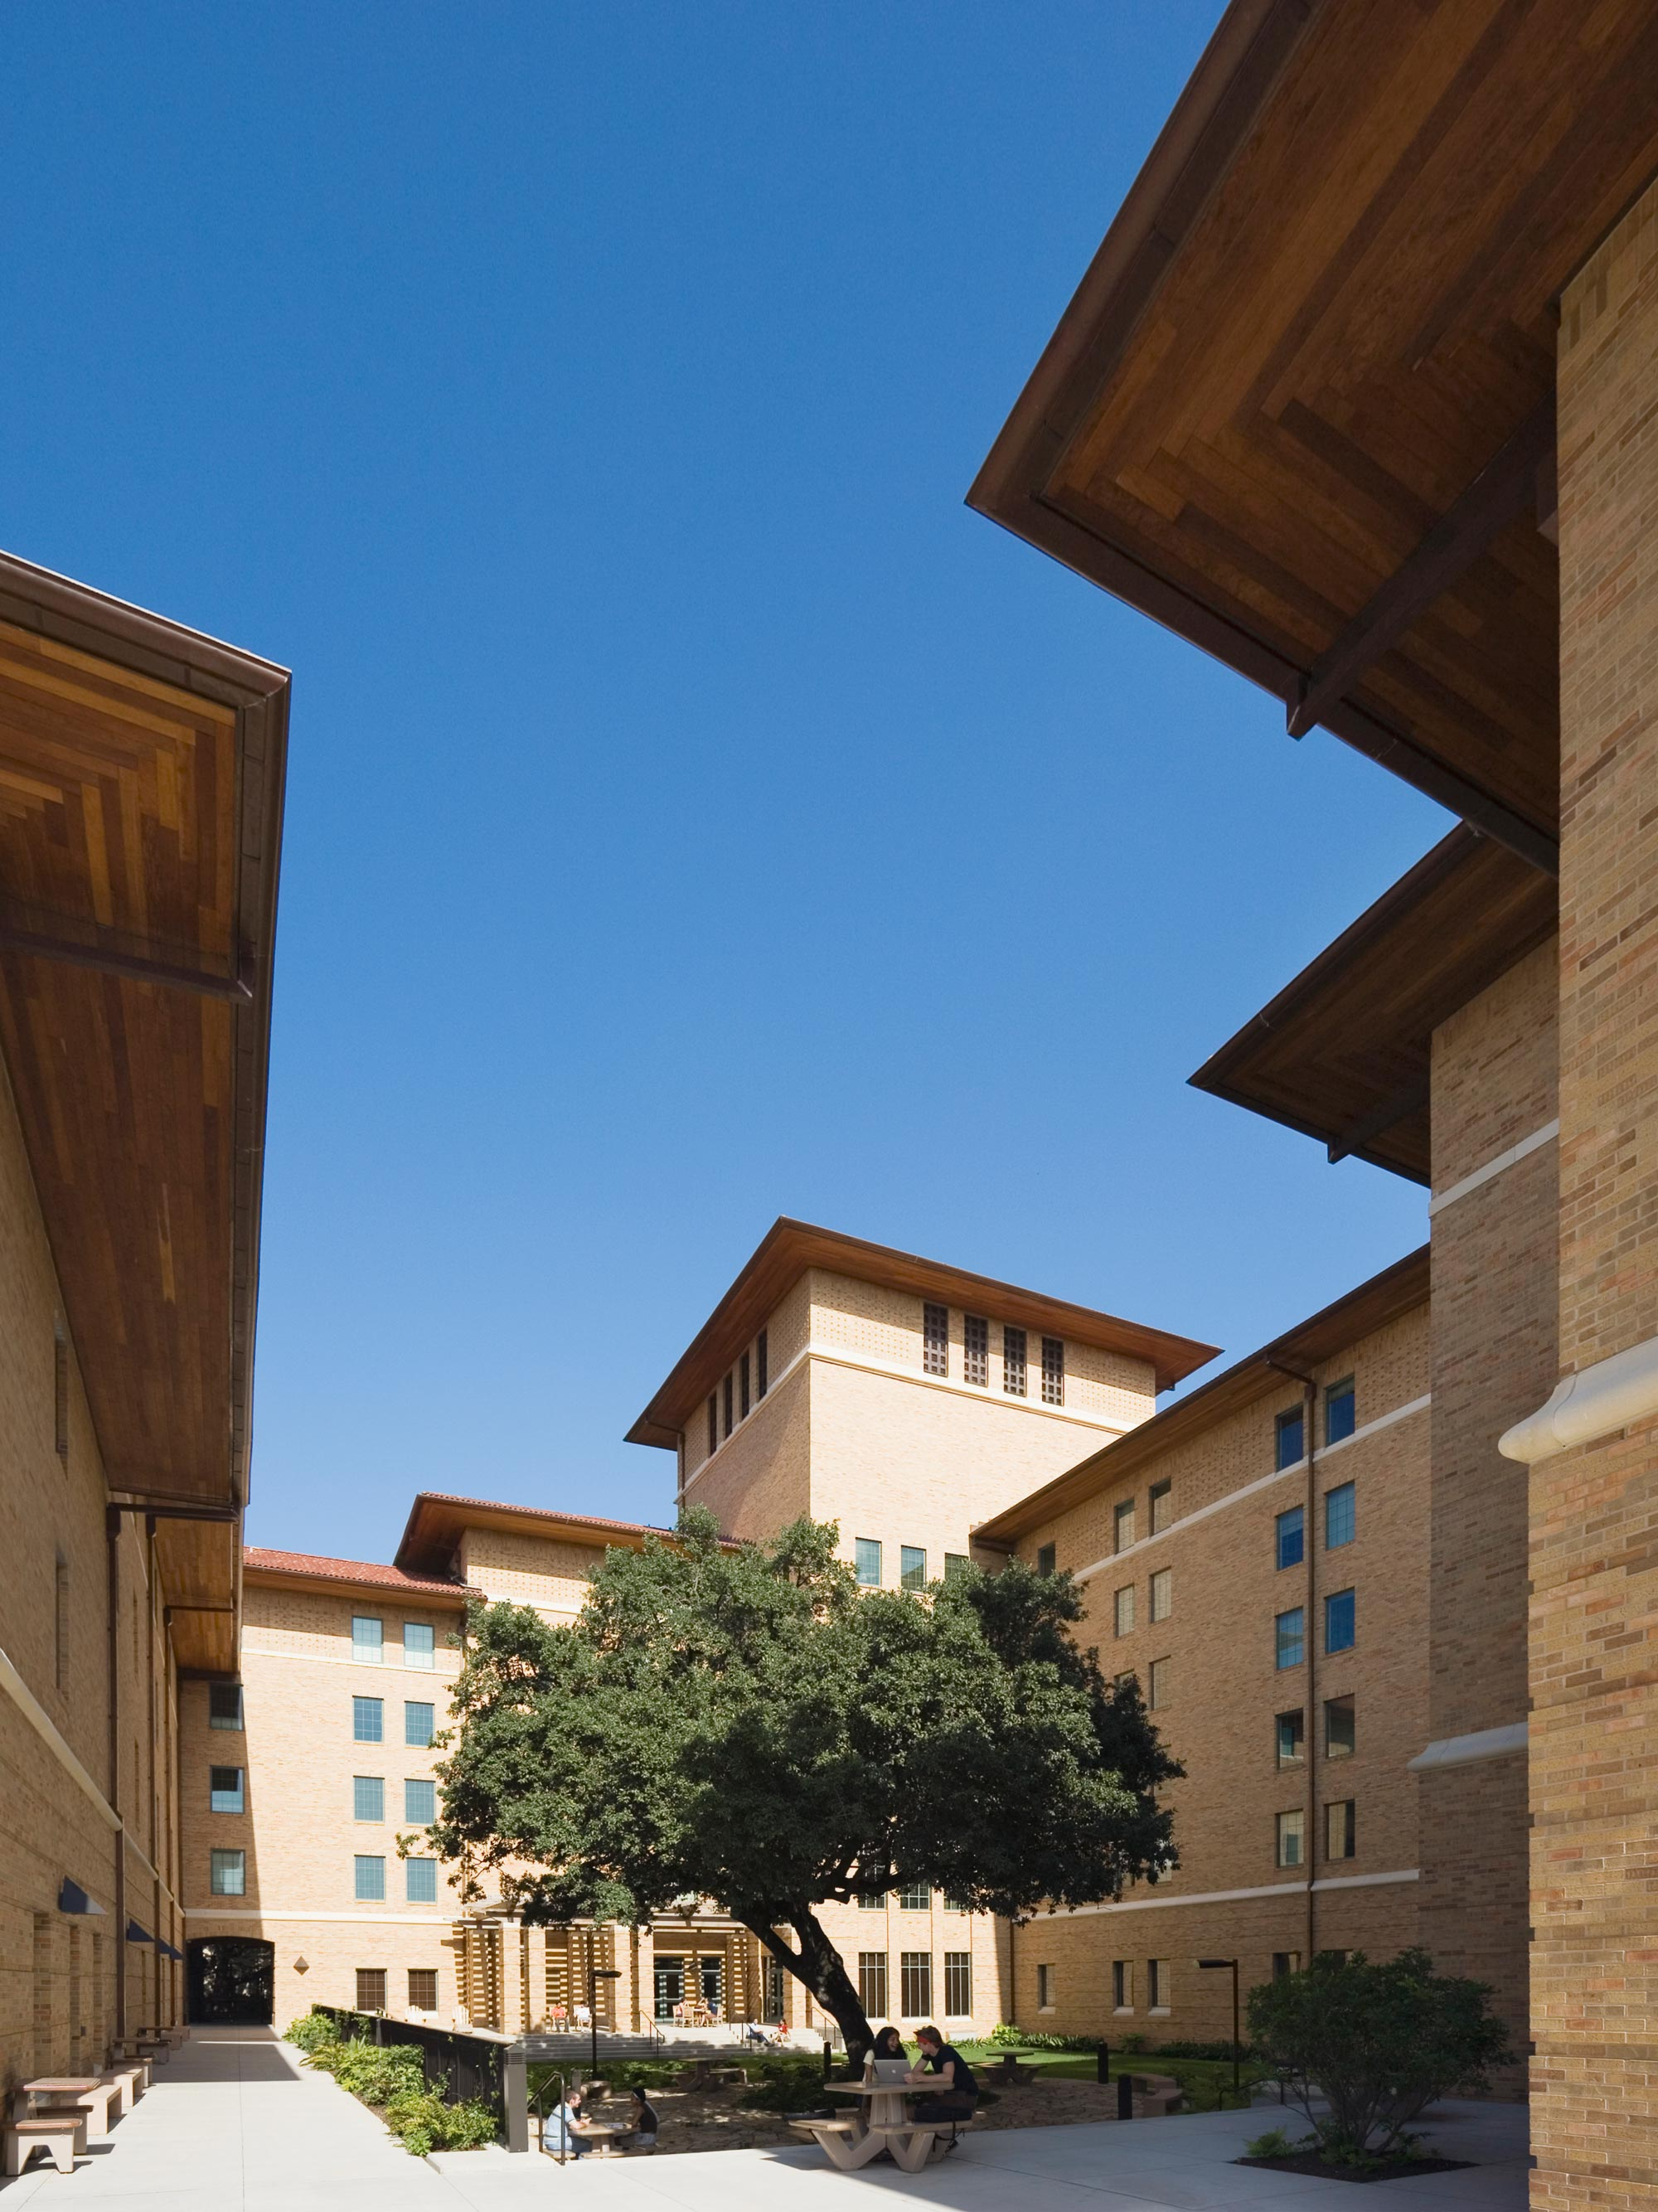 Almetris Duren, University of Texas at Austin   Residence Hall | Student Life | Exterior Social Space | Gateway